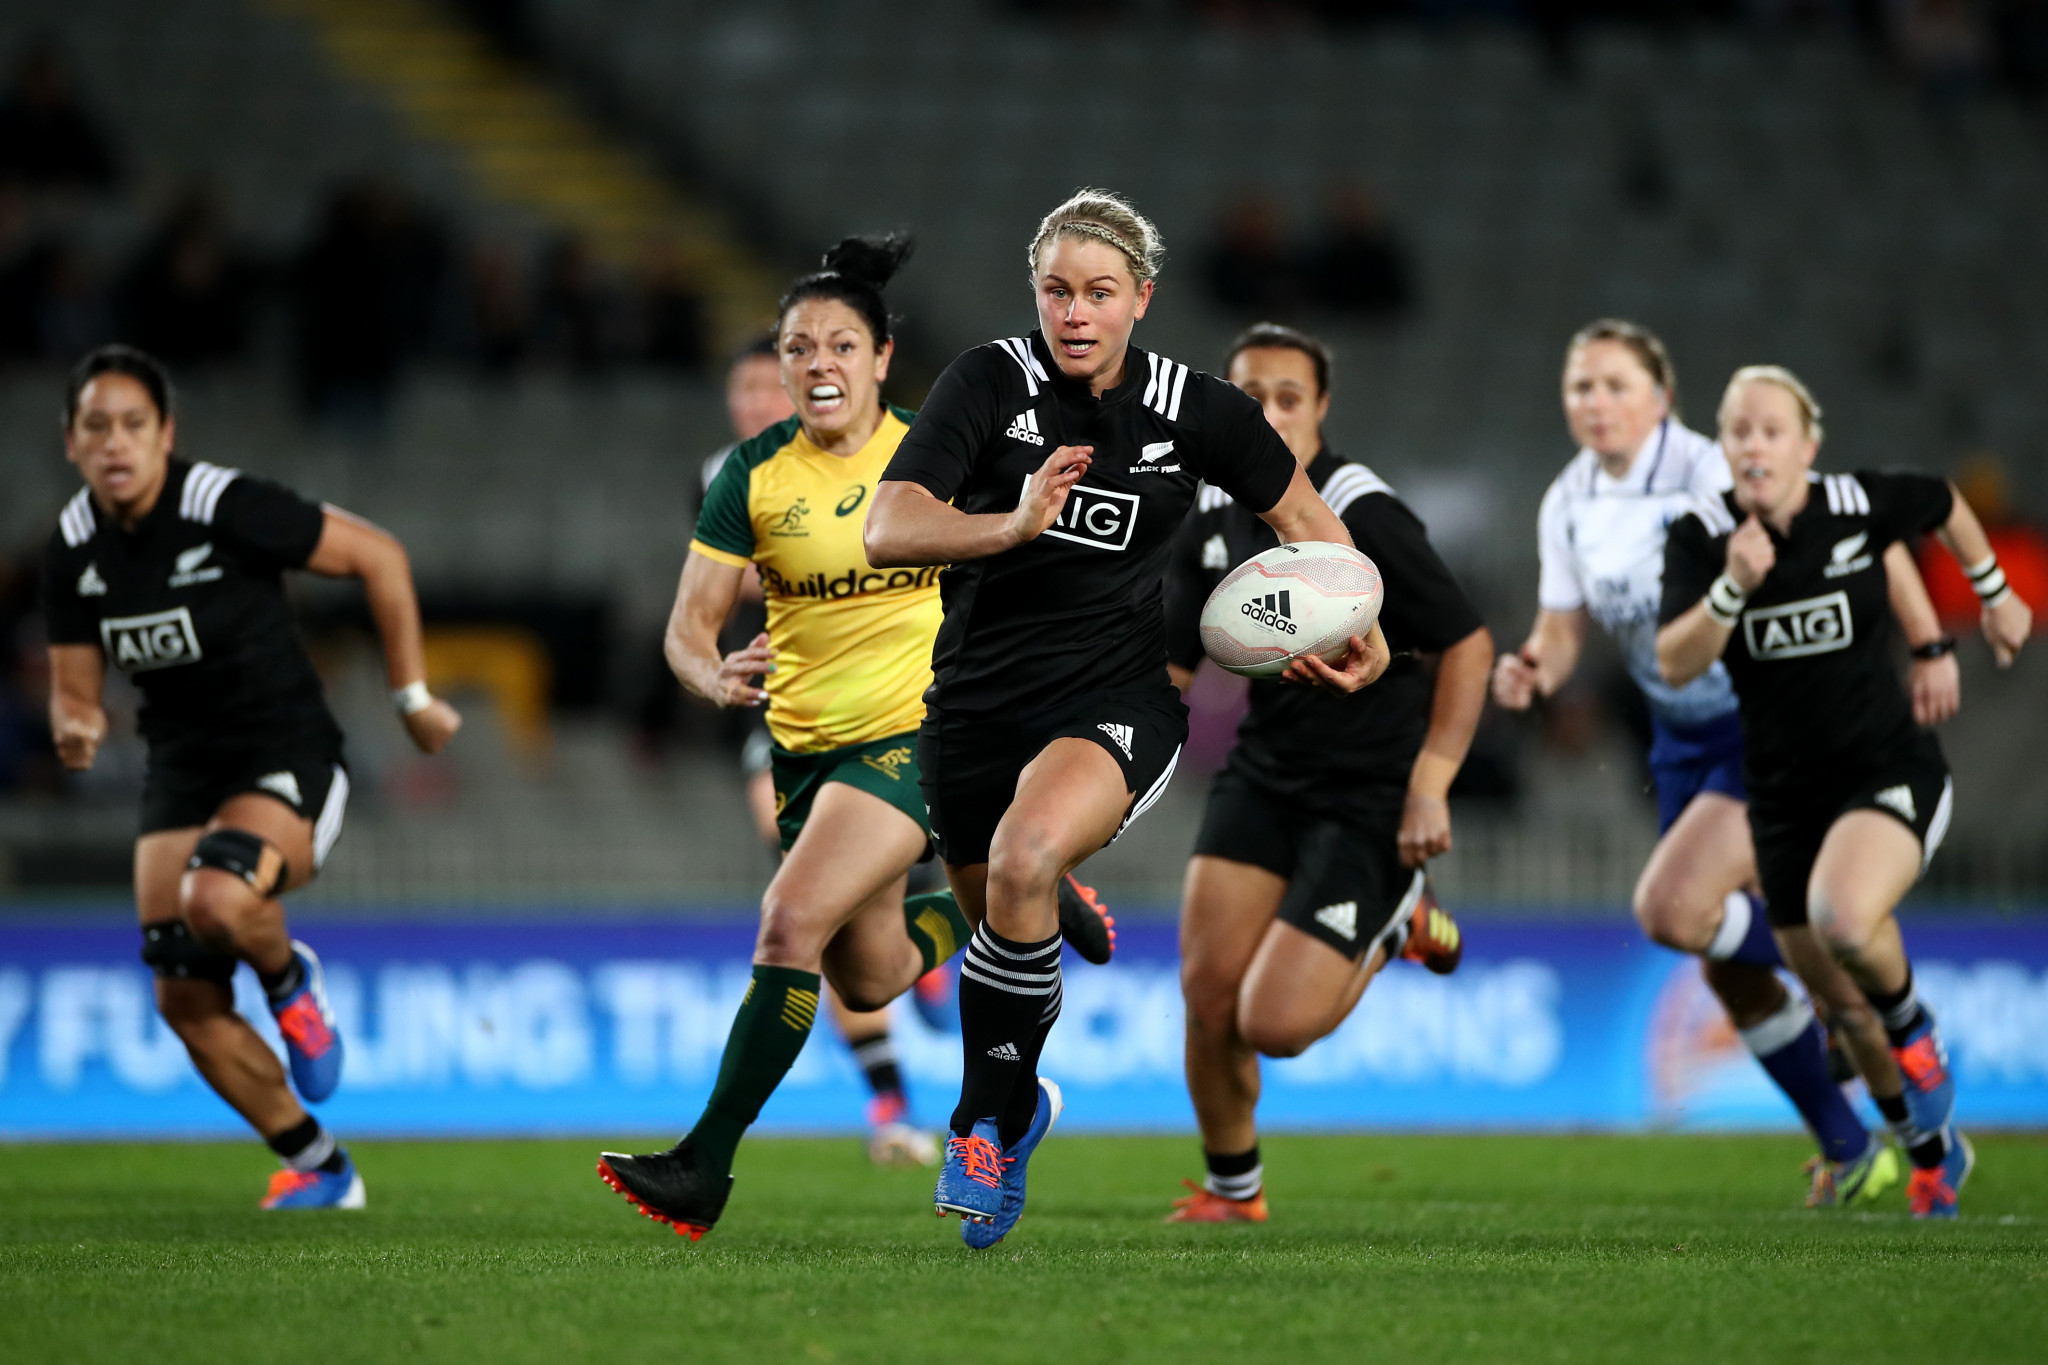 Gender neutral names will come into action for the Rugby World Cup 2021 in New Zealand ©Getty Images